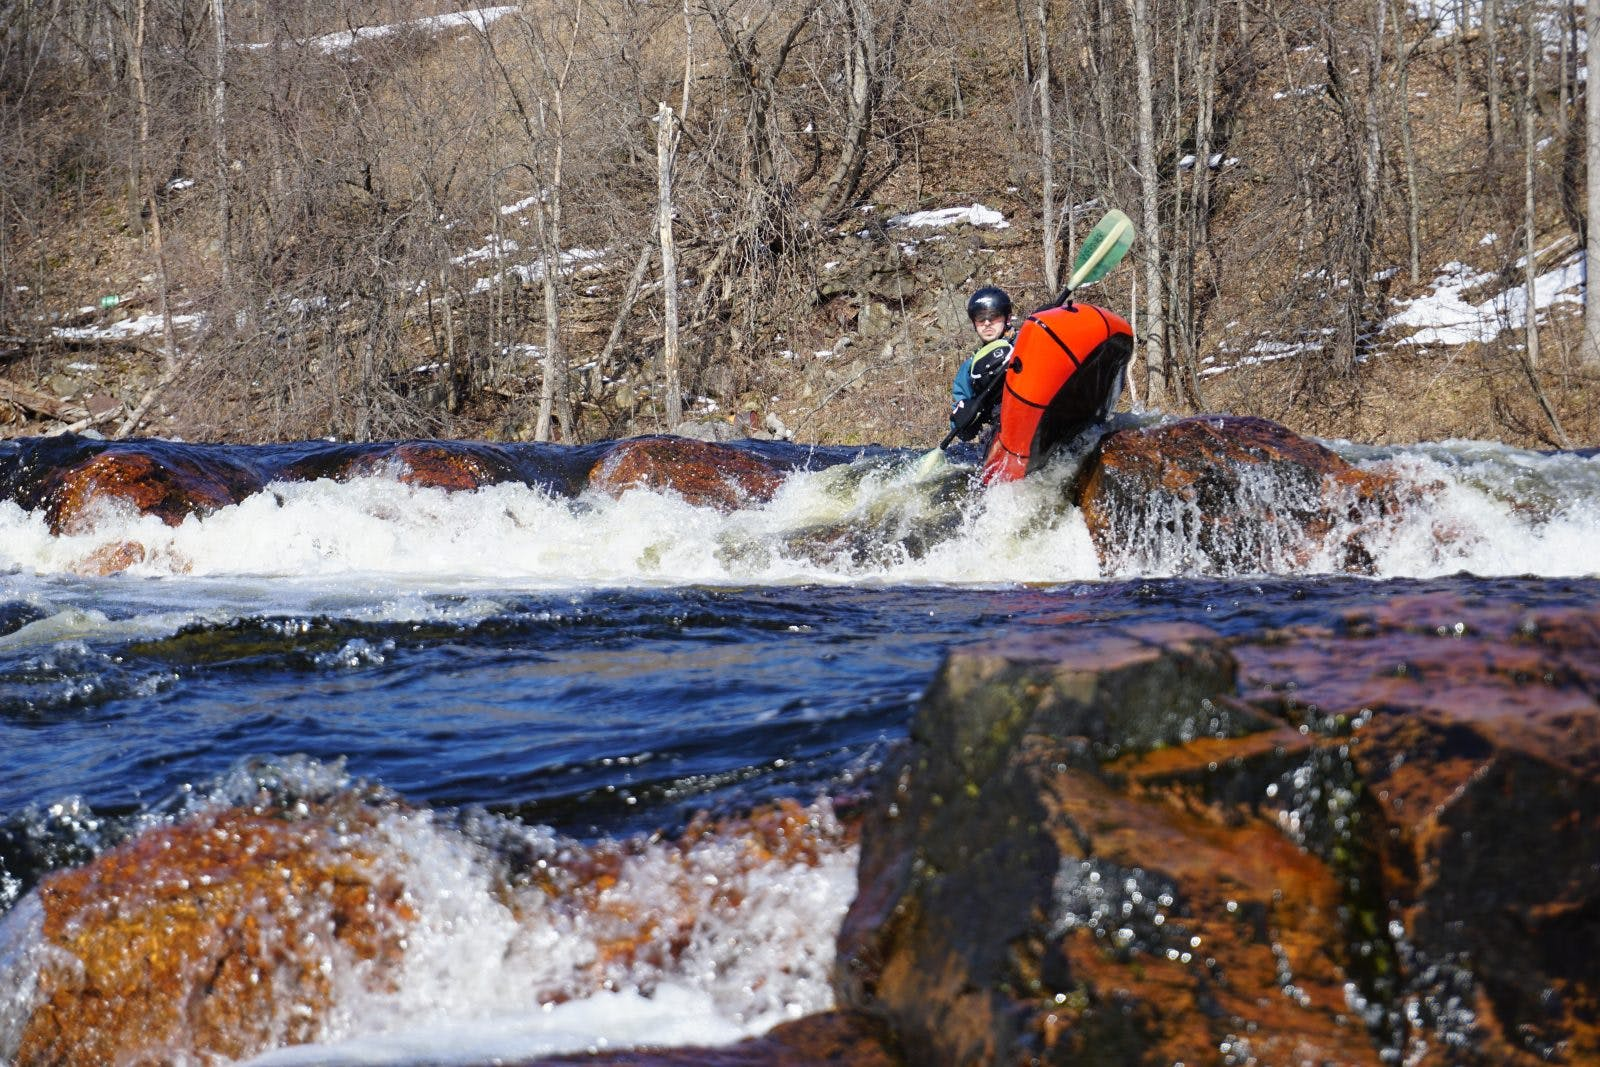 Alex LaLonde on the Redford River by Ted Teatrault